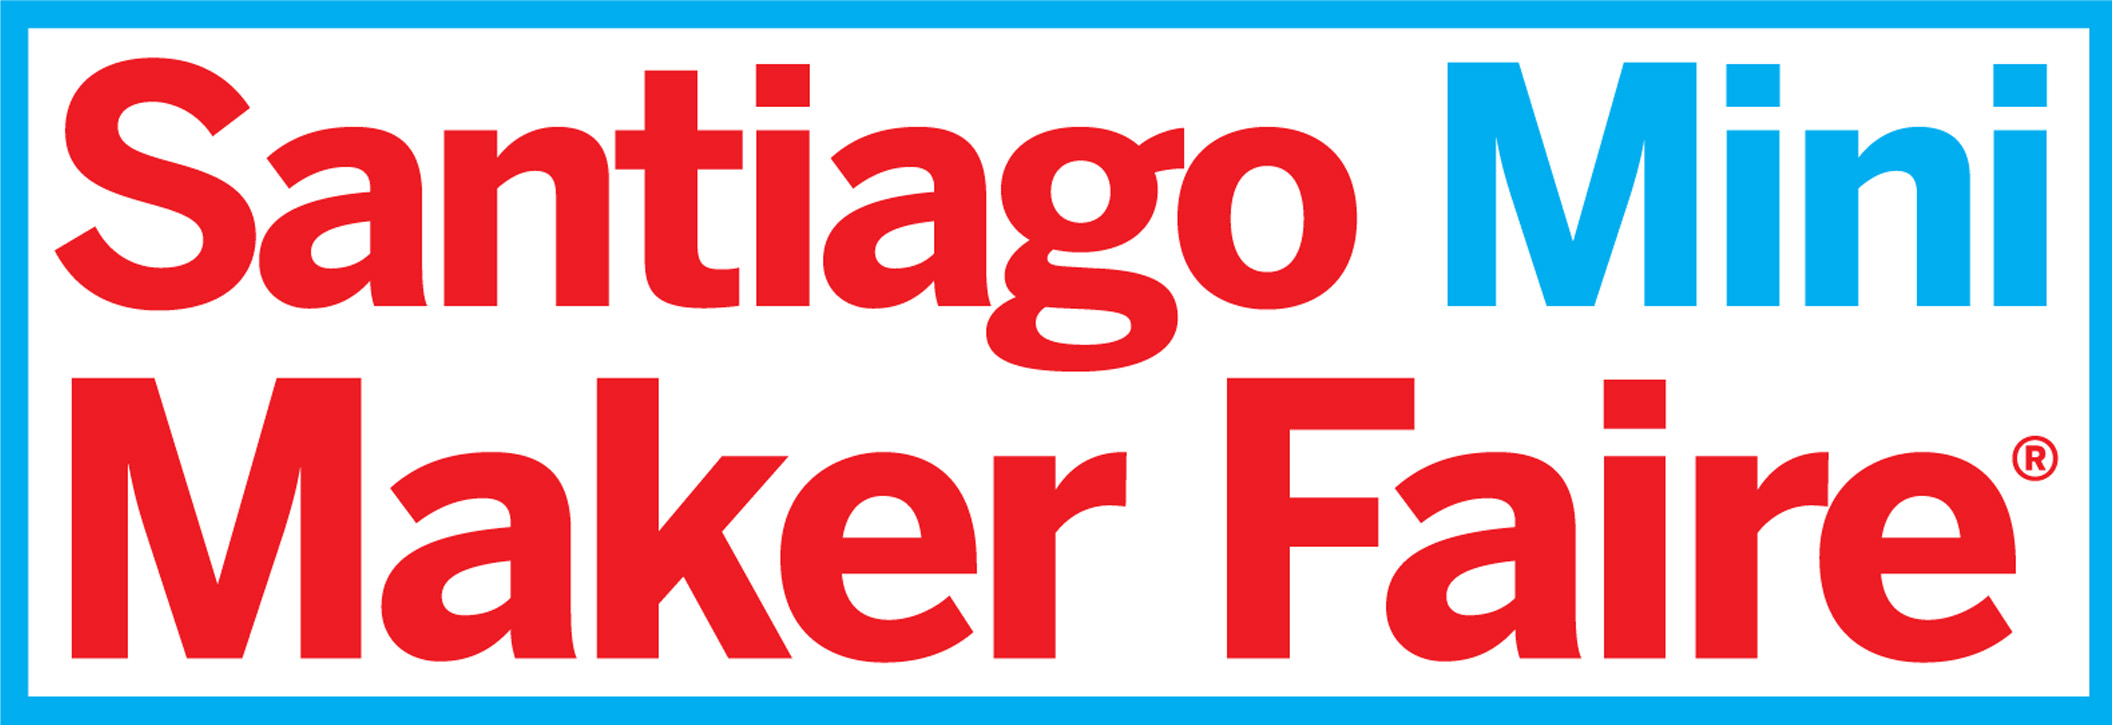 Stgo Mini maker faire